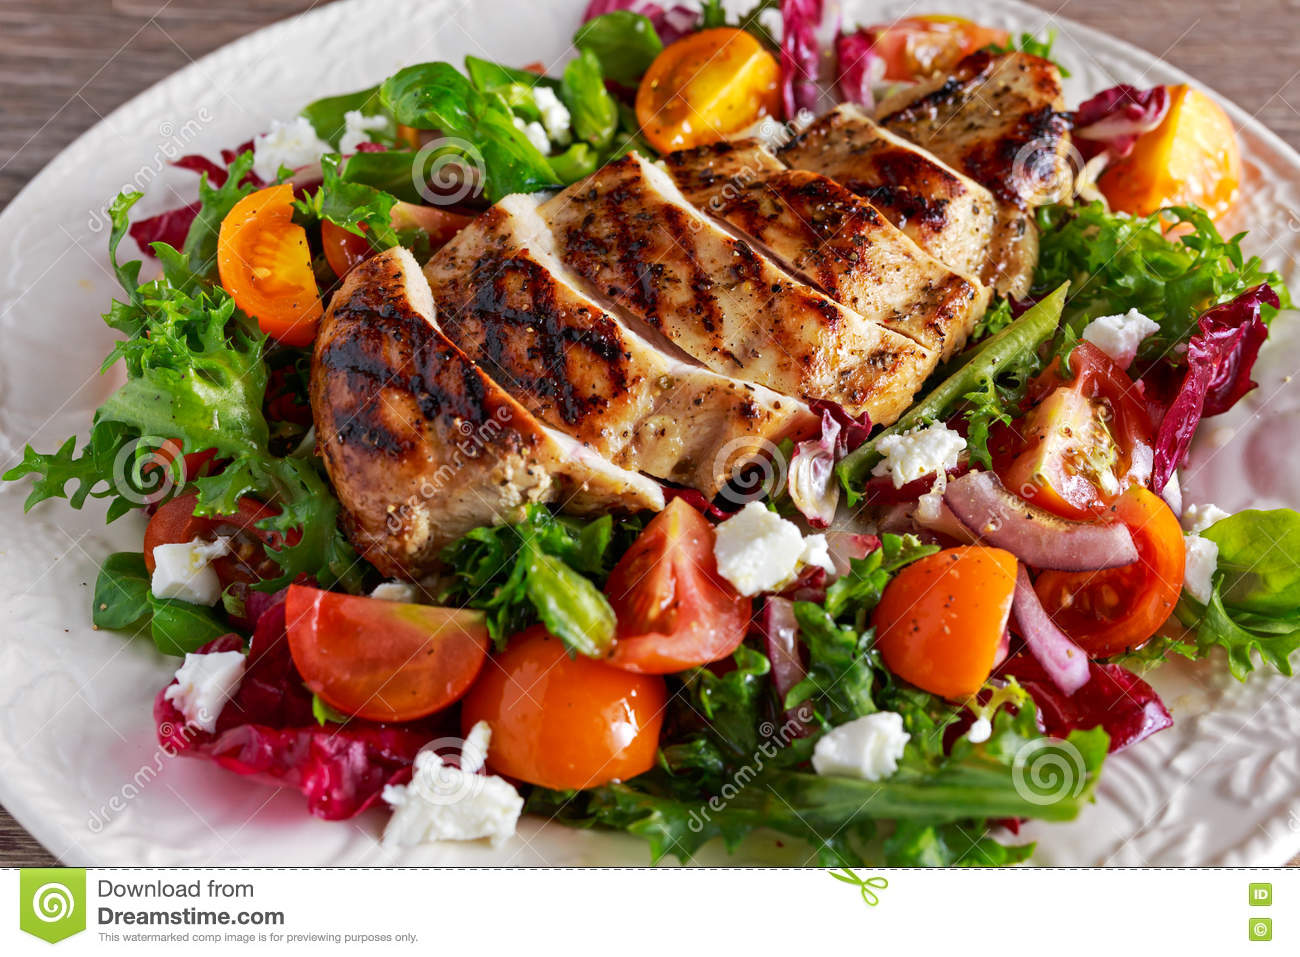 Good Foods Chicken Salad Where To Buy